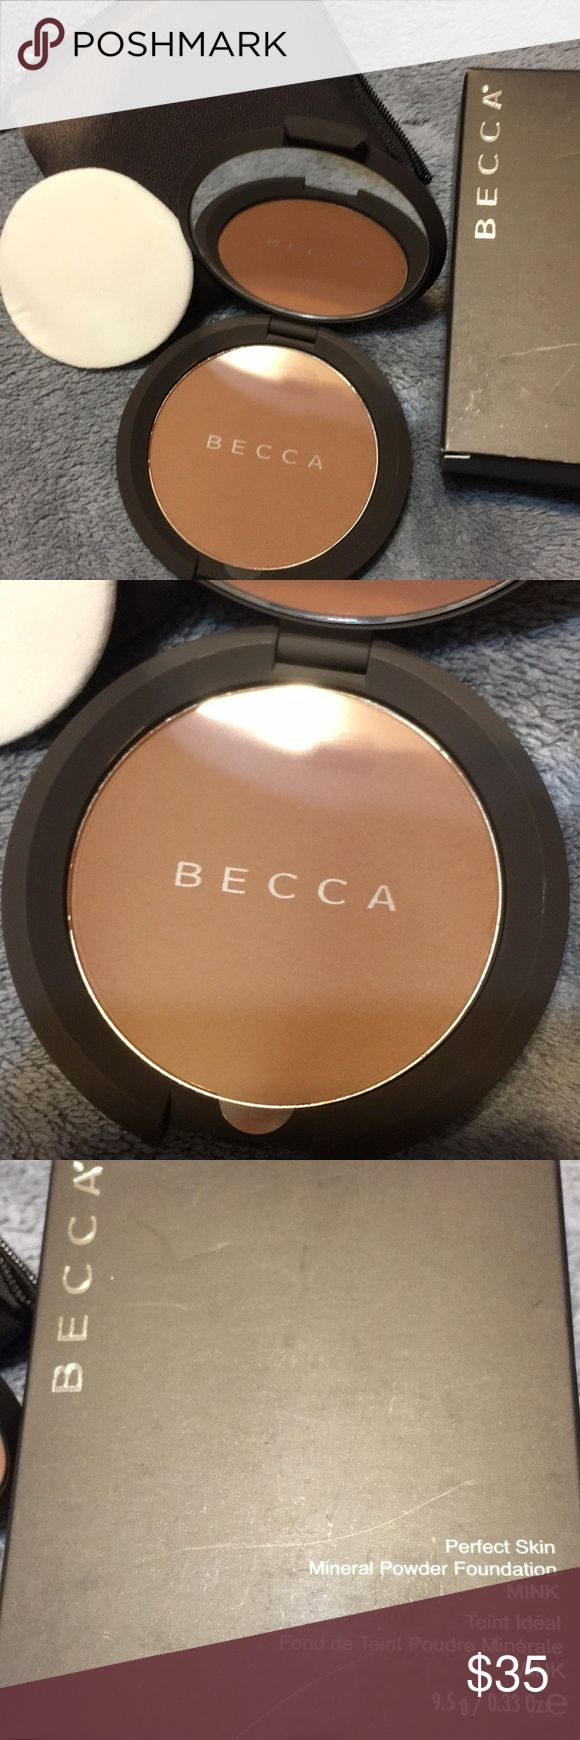 Becca perfect skin Mineral Powder Foundation Mink Description A silky powder foundation made of pure mineral pigments Lightweight & effortlessly glides on Deliver sheer finish that feels light & looks fresh all day Buildable coverage with antioxidant protection Leaves you a soft, smooth & luminous complexion Suitable for all skin types BECCA Makeup